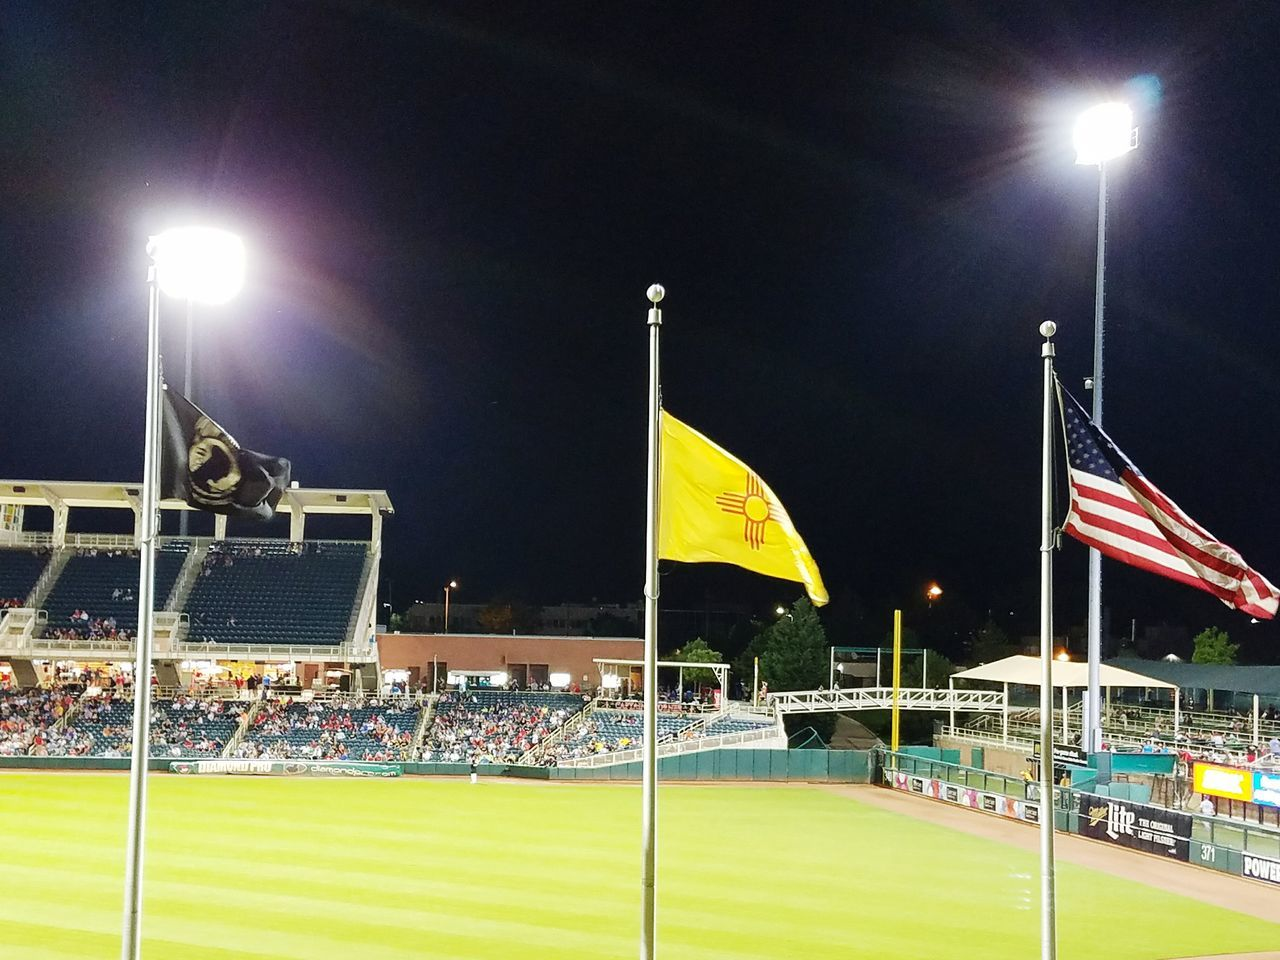 Hanging Out Taking Photos Check This Out Hello World Hi! Enjoying Life Just Having Fun Albuquerque New Mexico Samsung Galaxy S7 Edge Fresh On Eyeem  Beauty In Ordinary Things Simple Pleasures In Life Night Photography Baseball Game Pow Mia Flag New Mexico Flag Crowds Fans